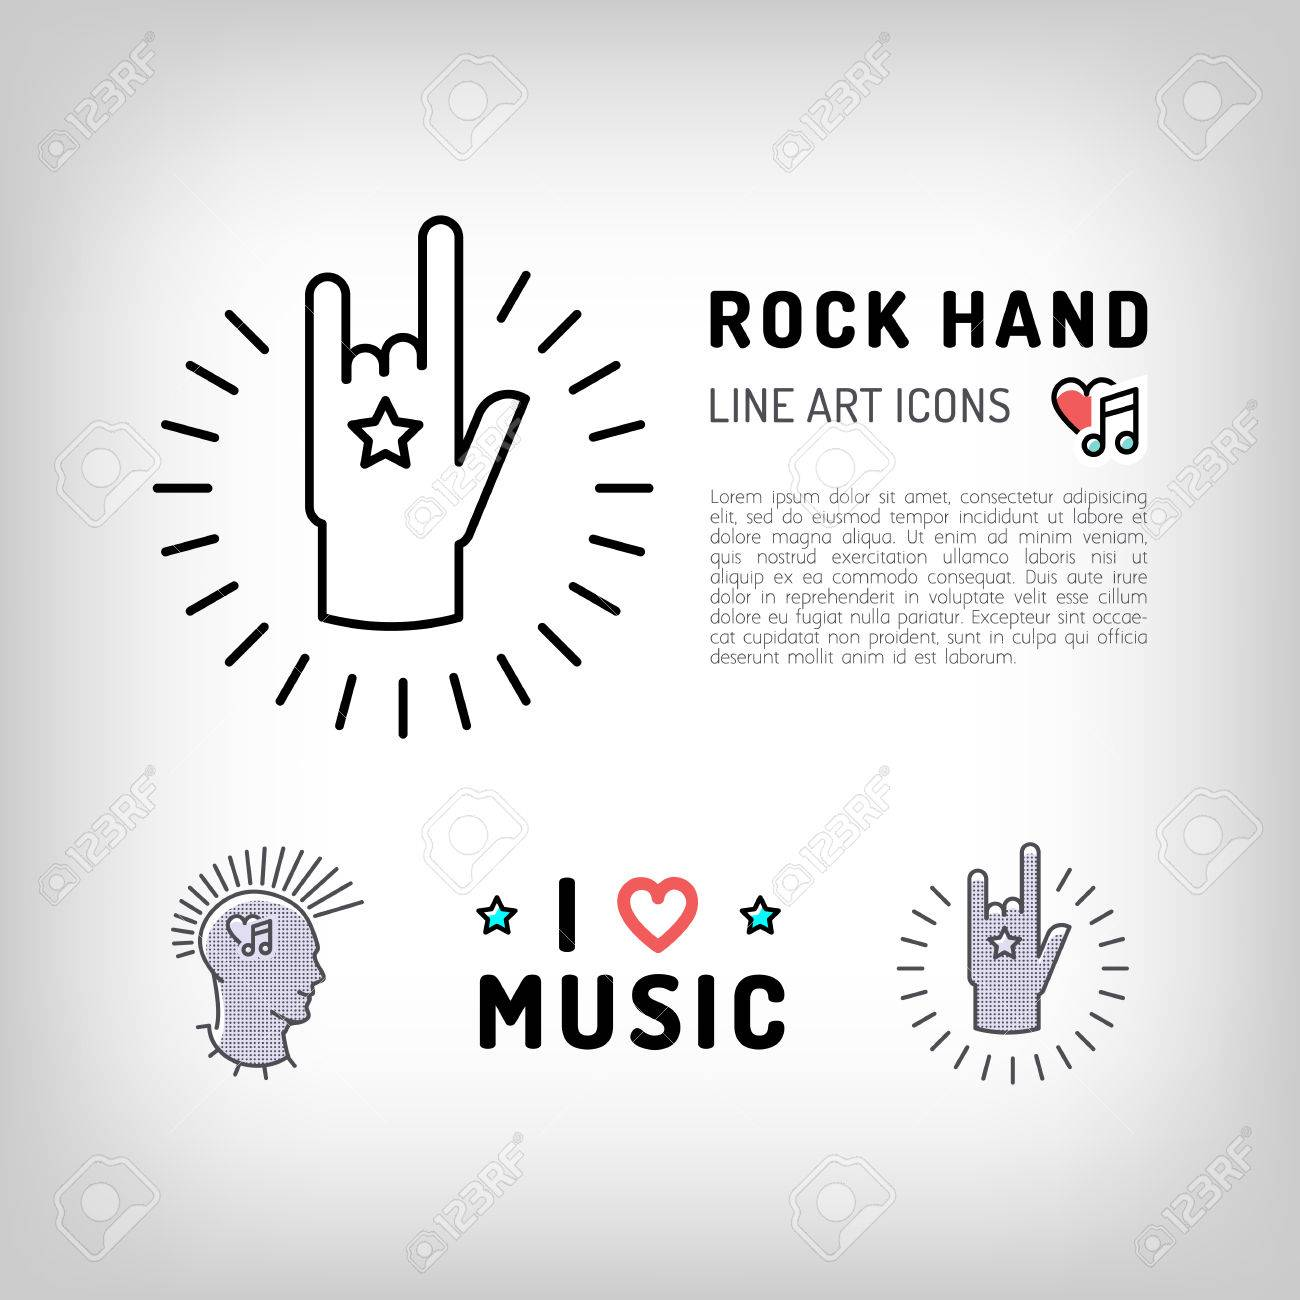 Rock hand sign punk rock music icons the concept symbols of rock hand sign punk rock music icons the concept symbols of love for music biocorpaavc Image collections